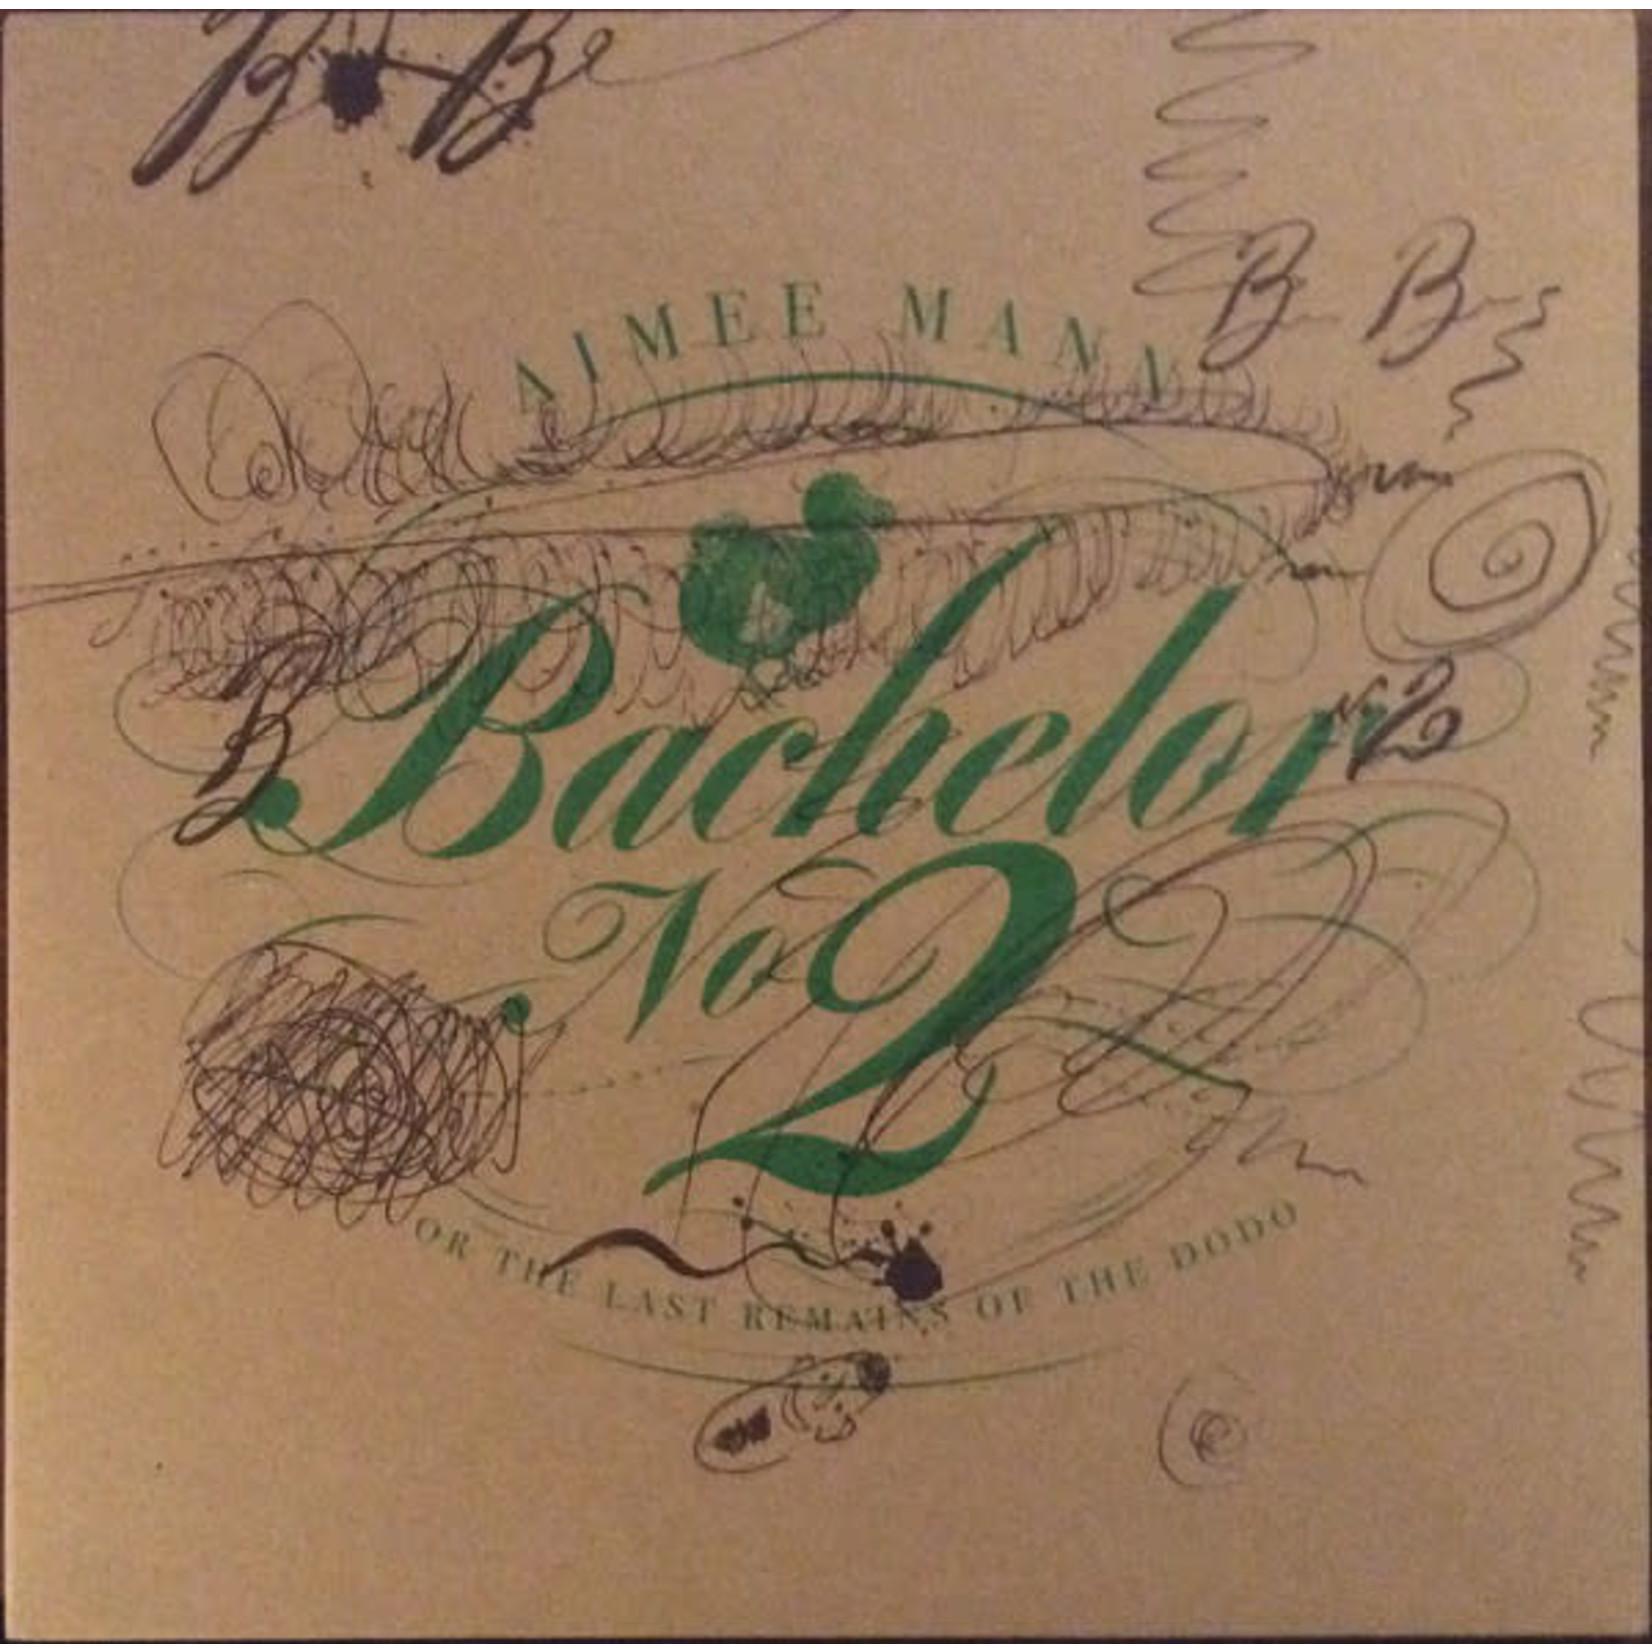 AIMEE MANN BF 2020 - BACHELOR NO. 2 (THE LAST REMAINS OF THE DODO)